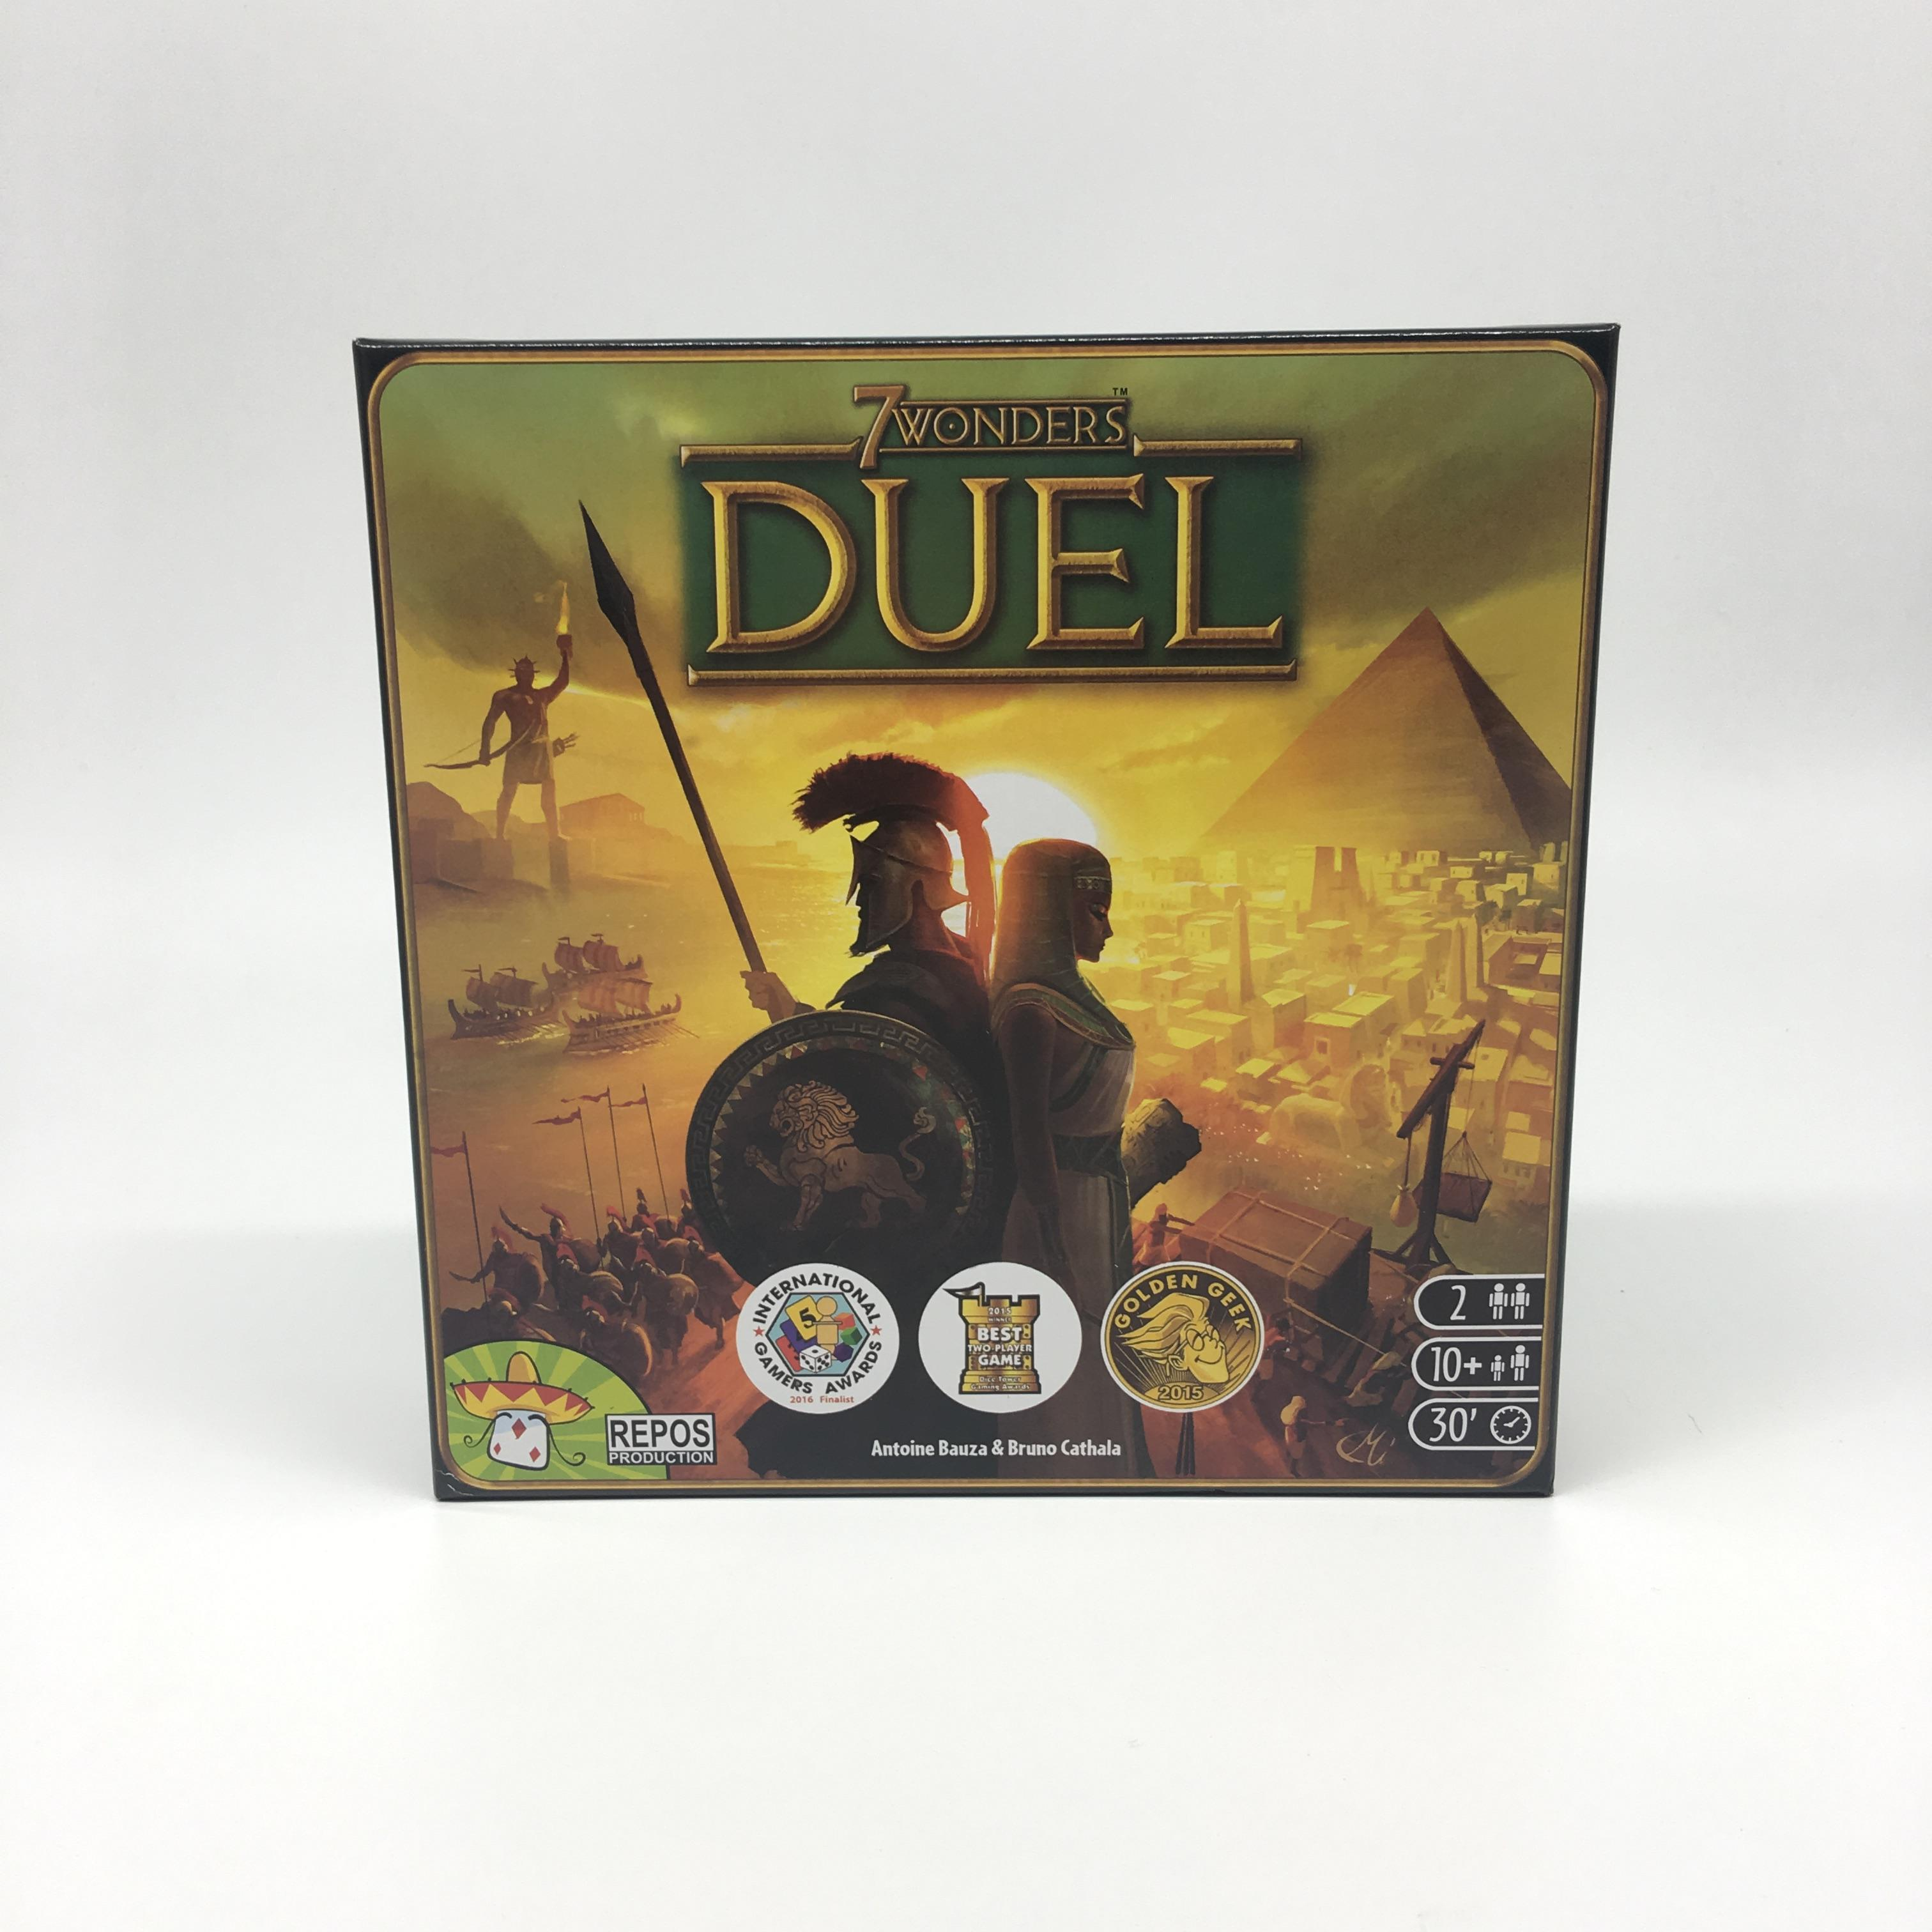 2020 New Card Game Duel Game English Version 7 Wonders  Board Game Party Family Board Game Kid Toys